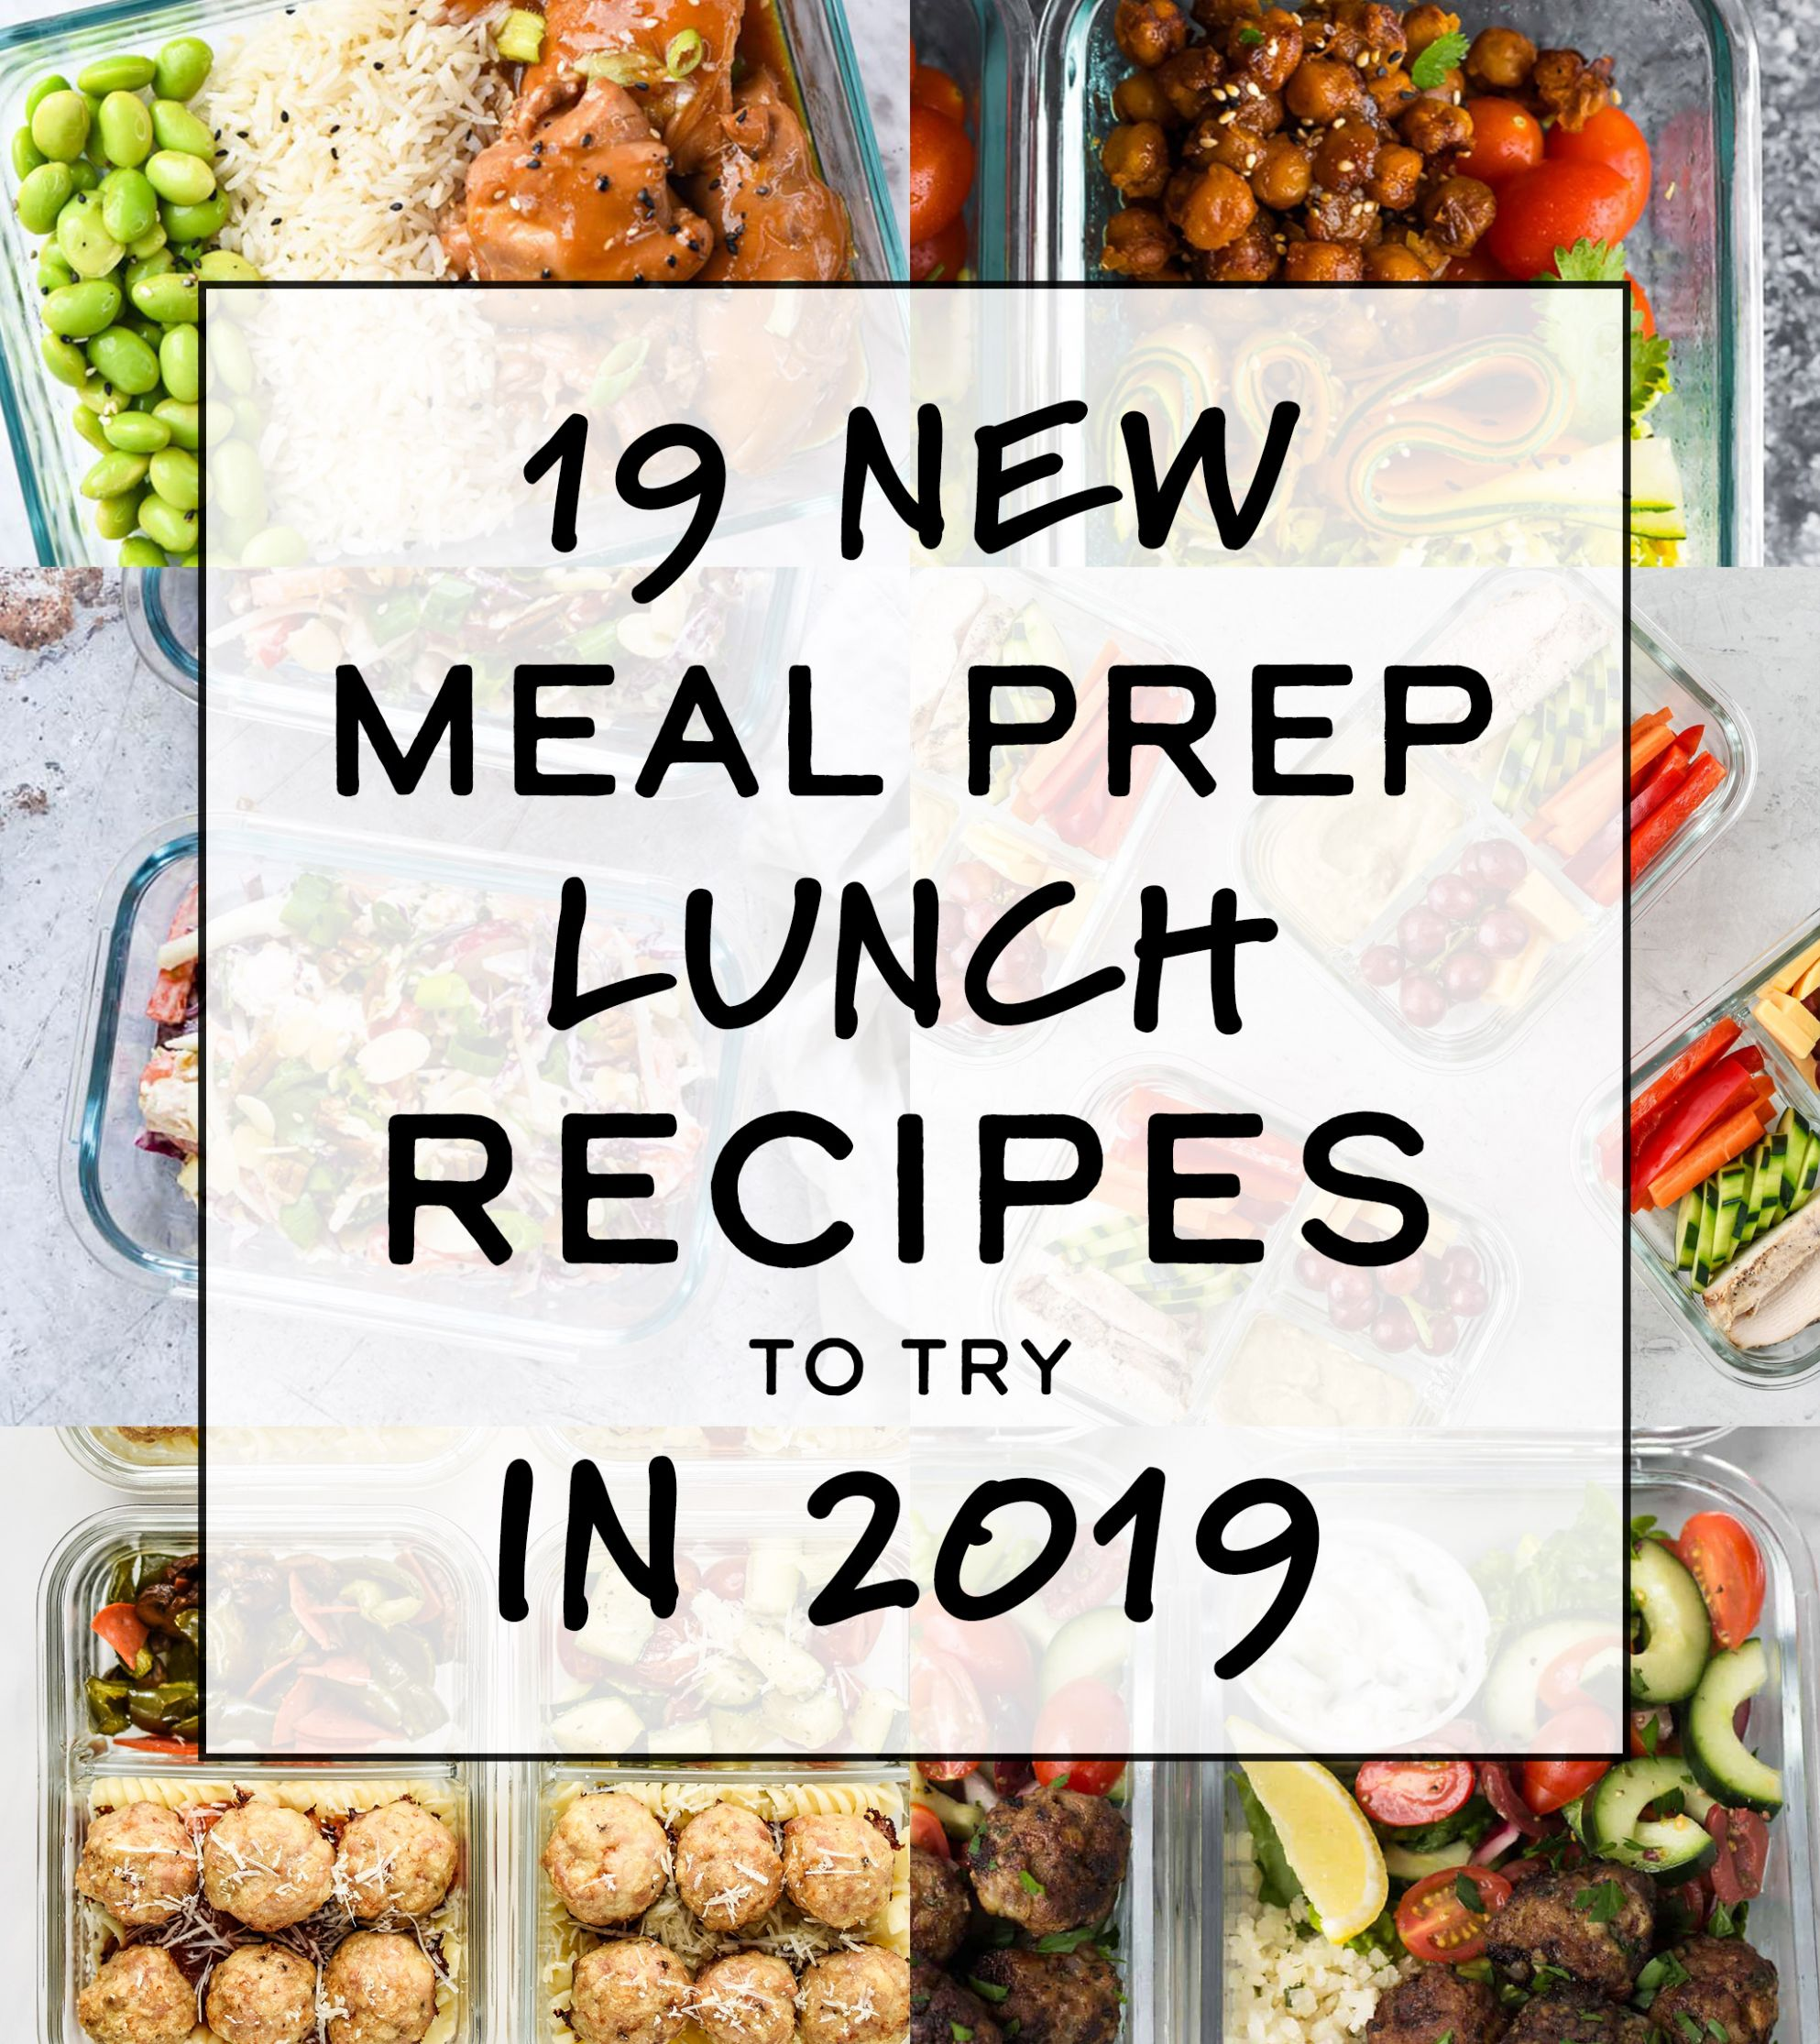 12 New Meal Prep Lunch Recipes to Try in 2012 - Project Meal Plan - Food Recipes To Try